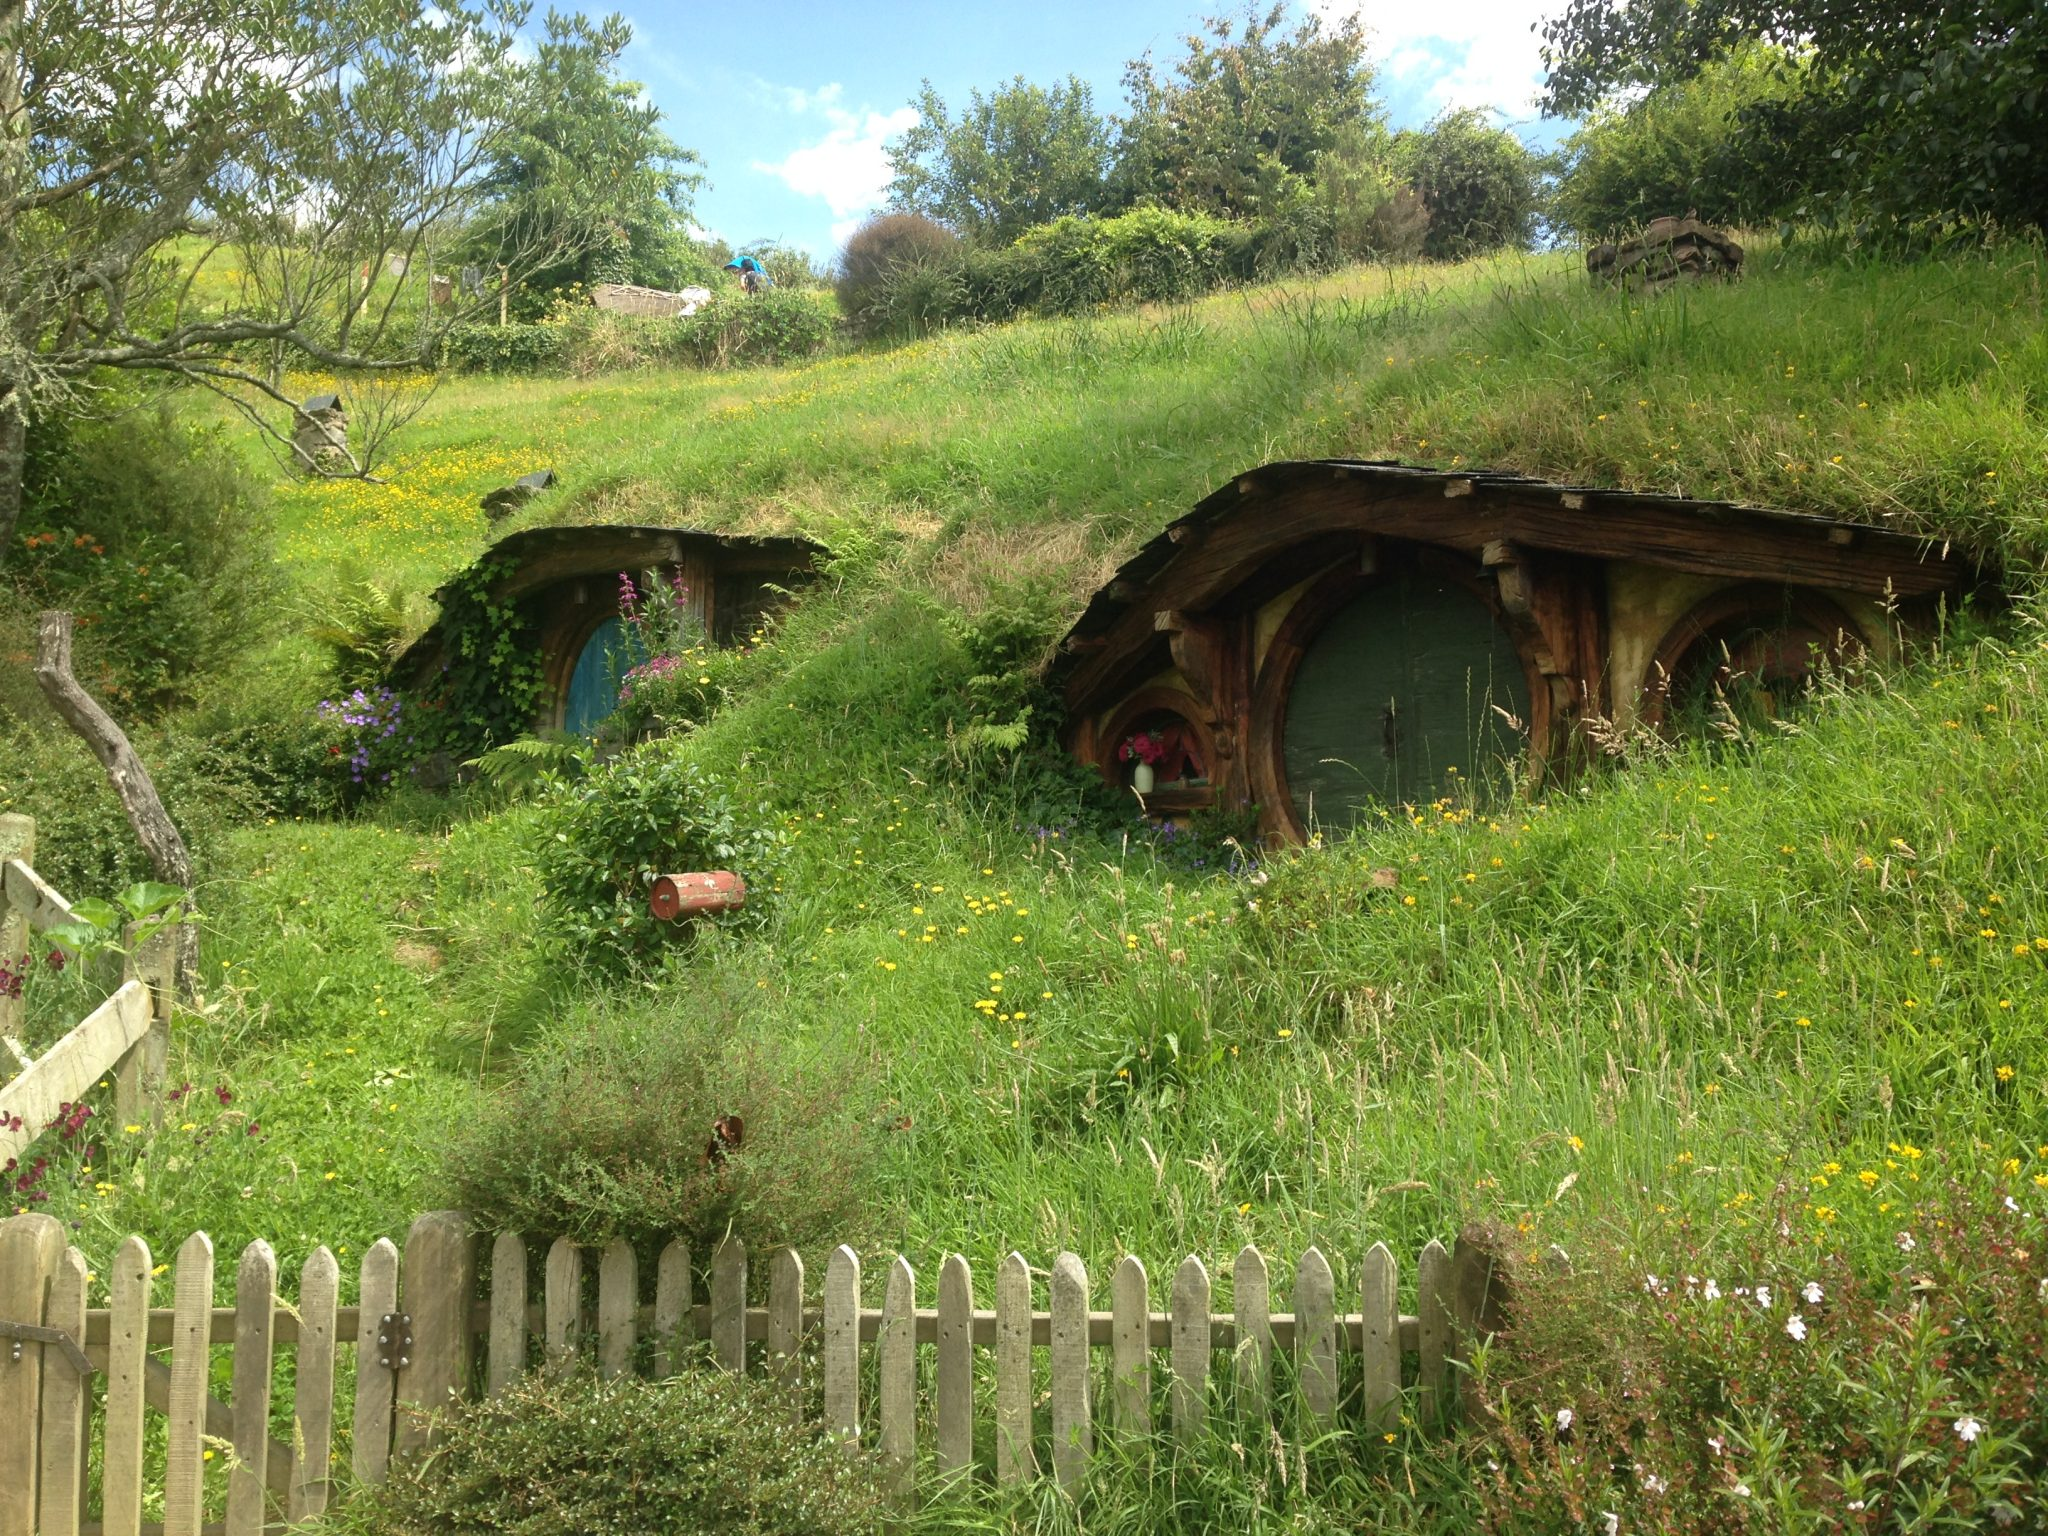 Hobbit holes, Hobbiton Movie Set, New Zealand.